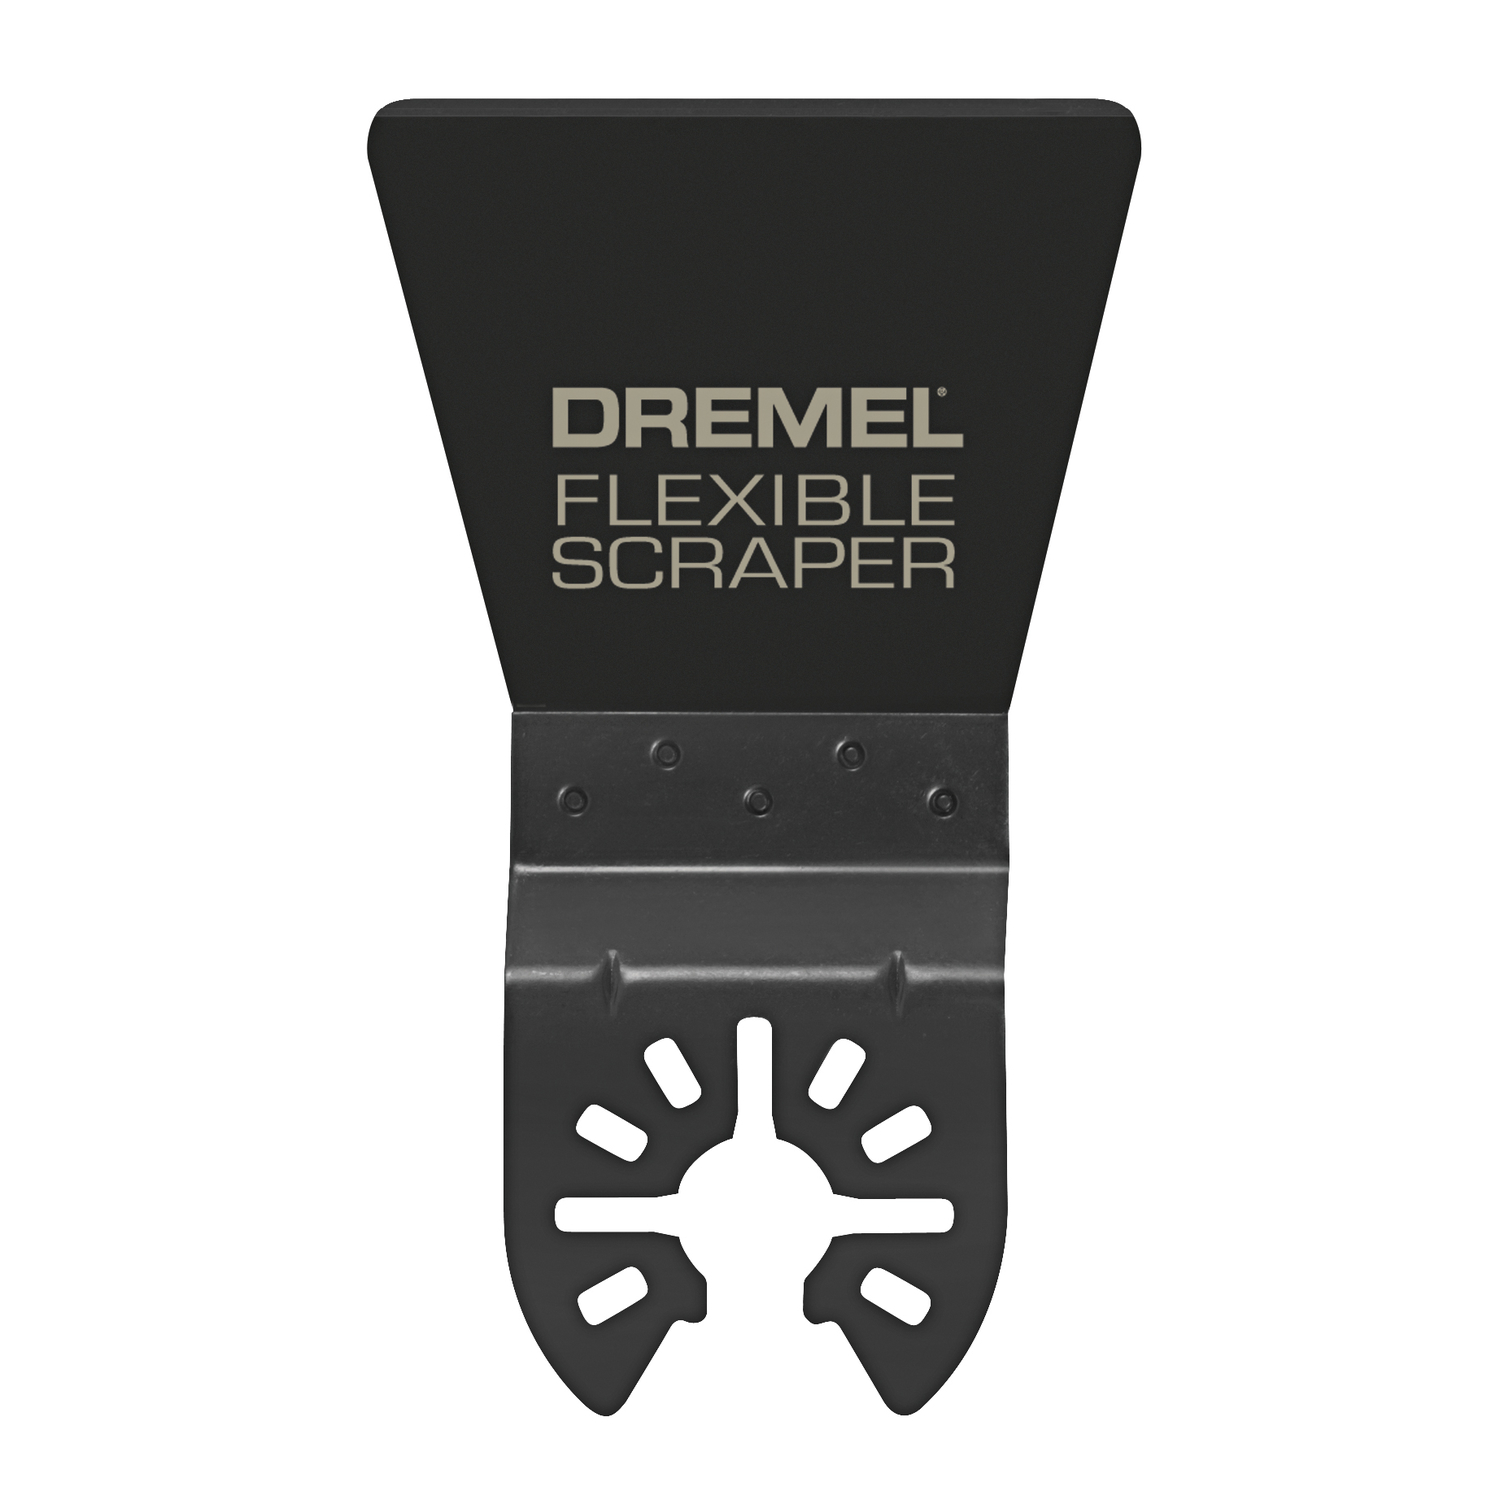 Dremel  Multi-Max  3 in   x 1-1/2 in. L Flexible Scraper Blade  1 pk Steel